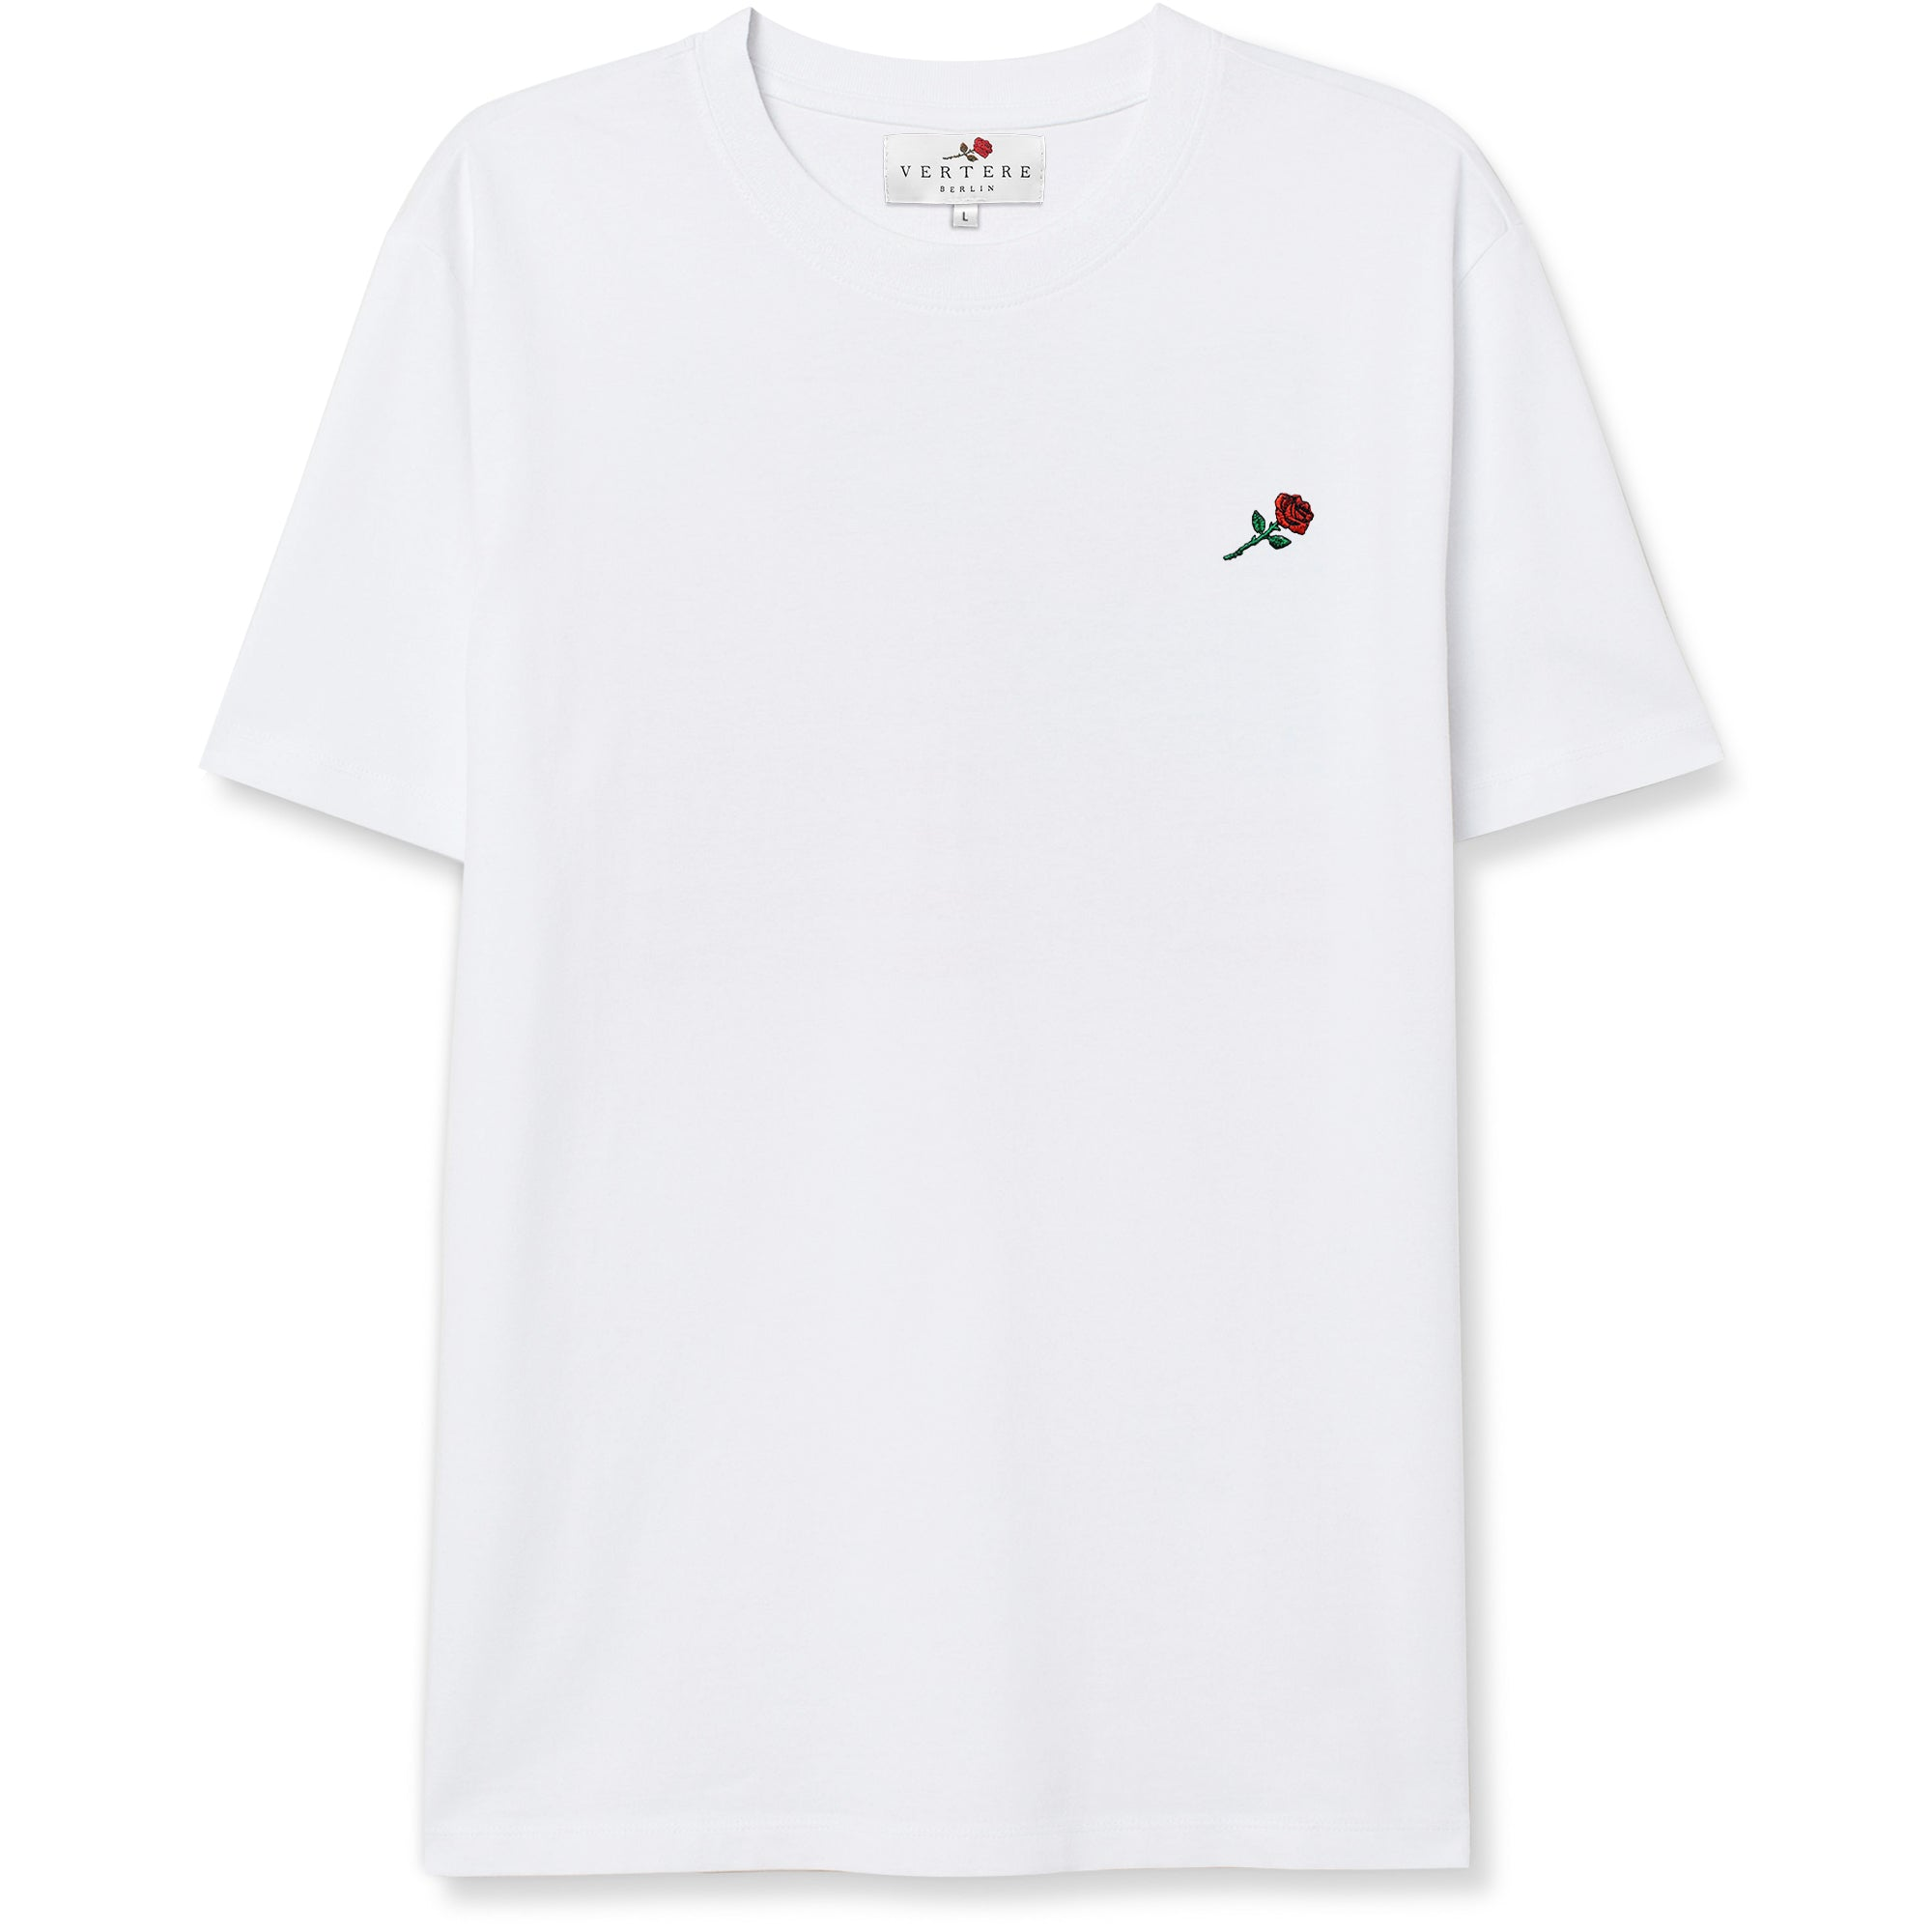 ROSE T-SHIRT - WHITE